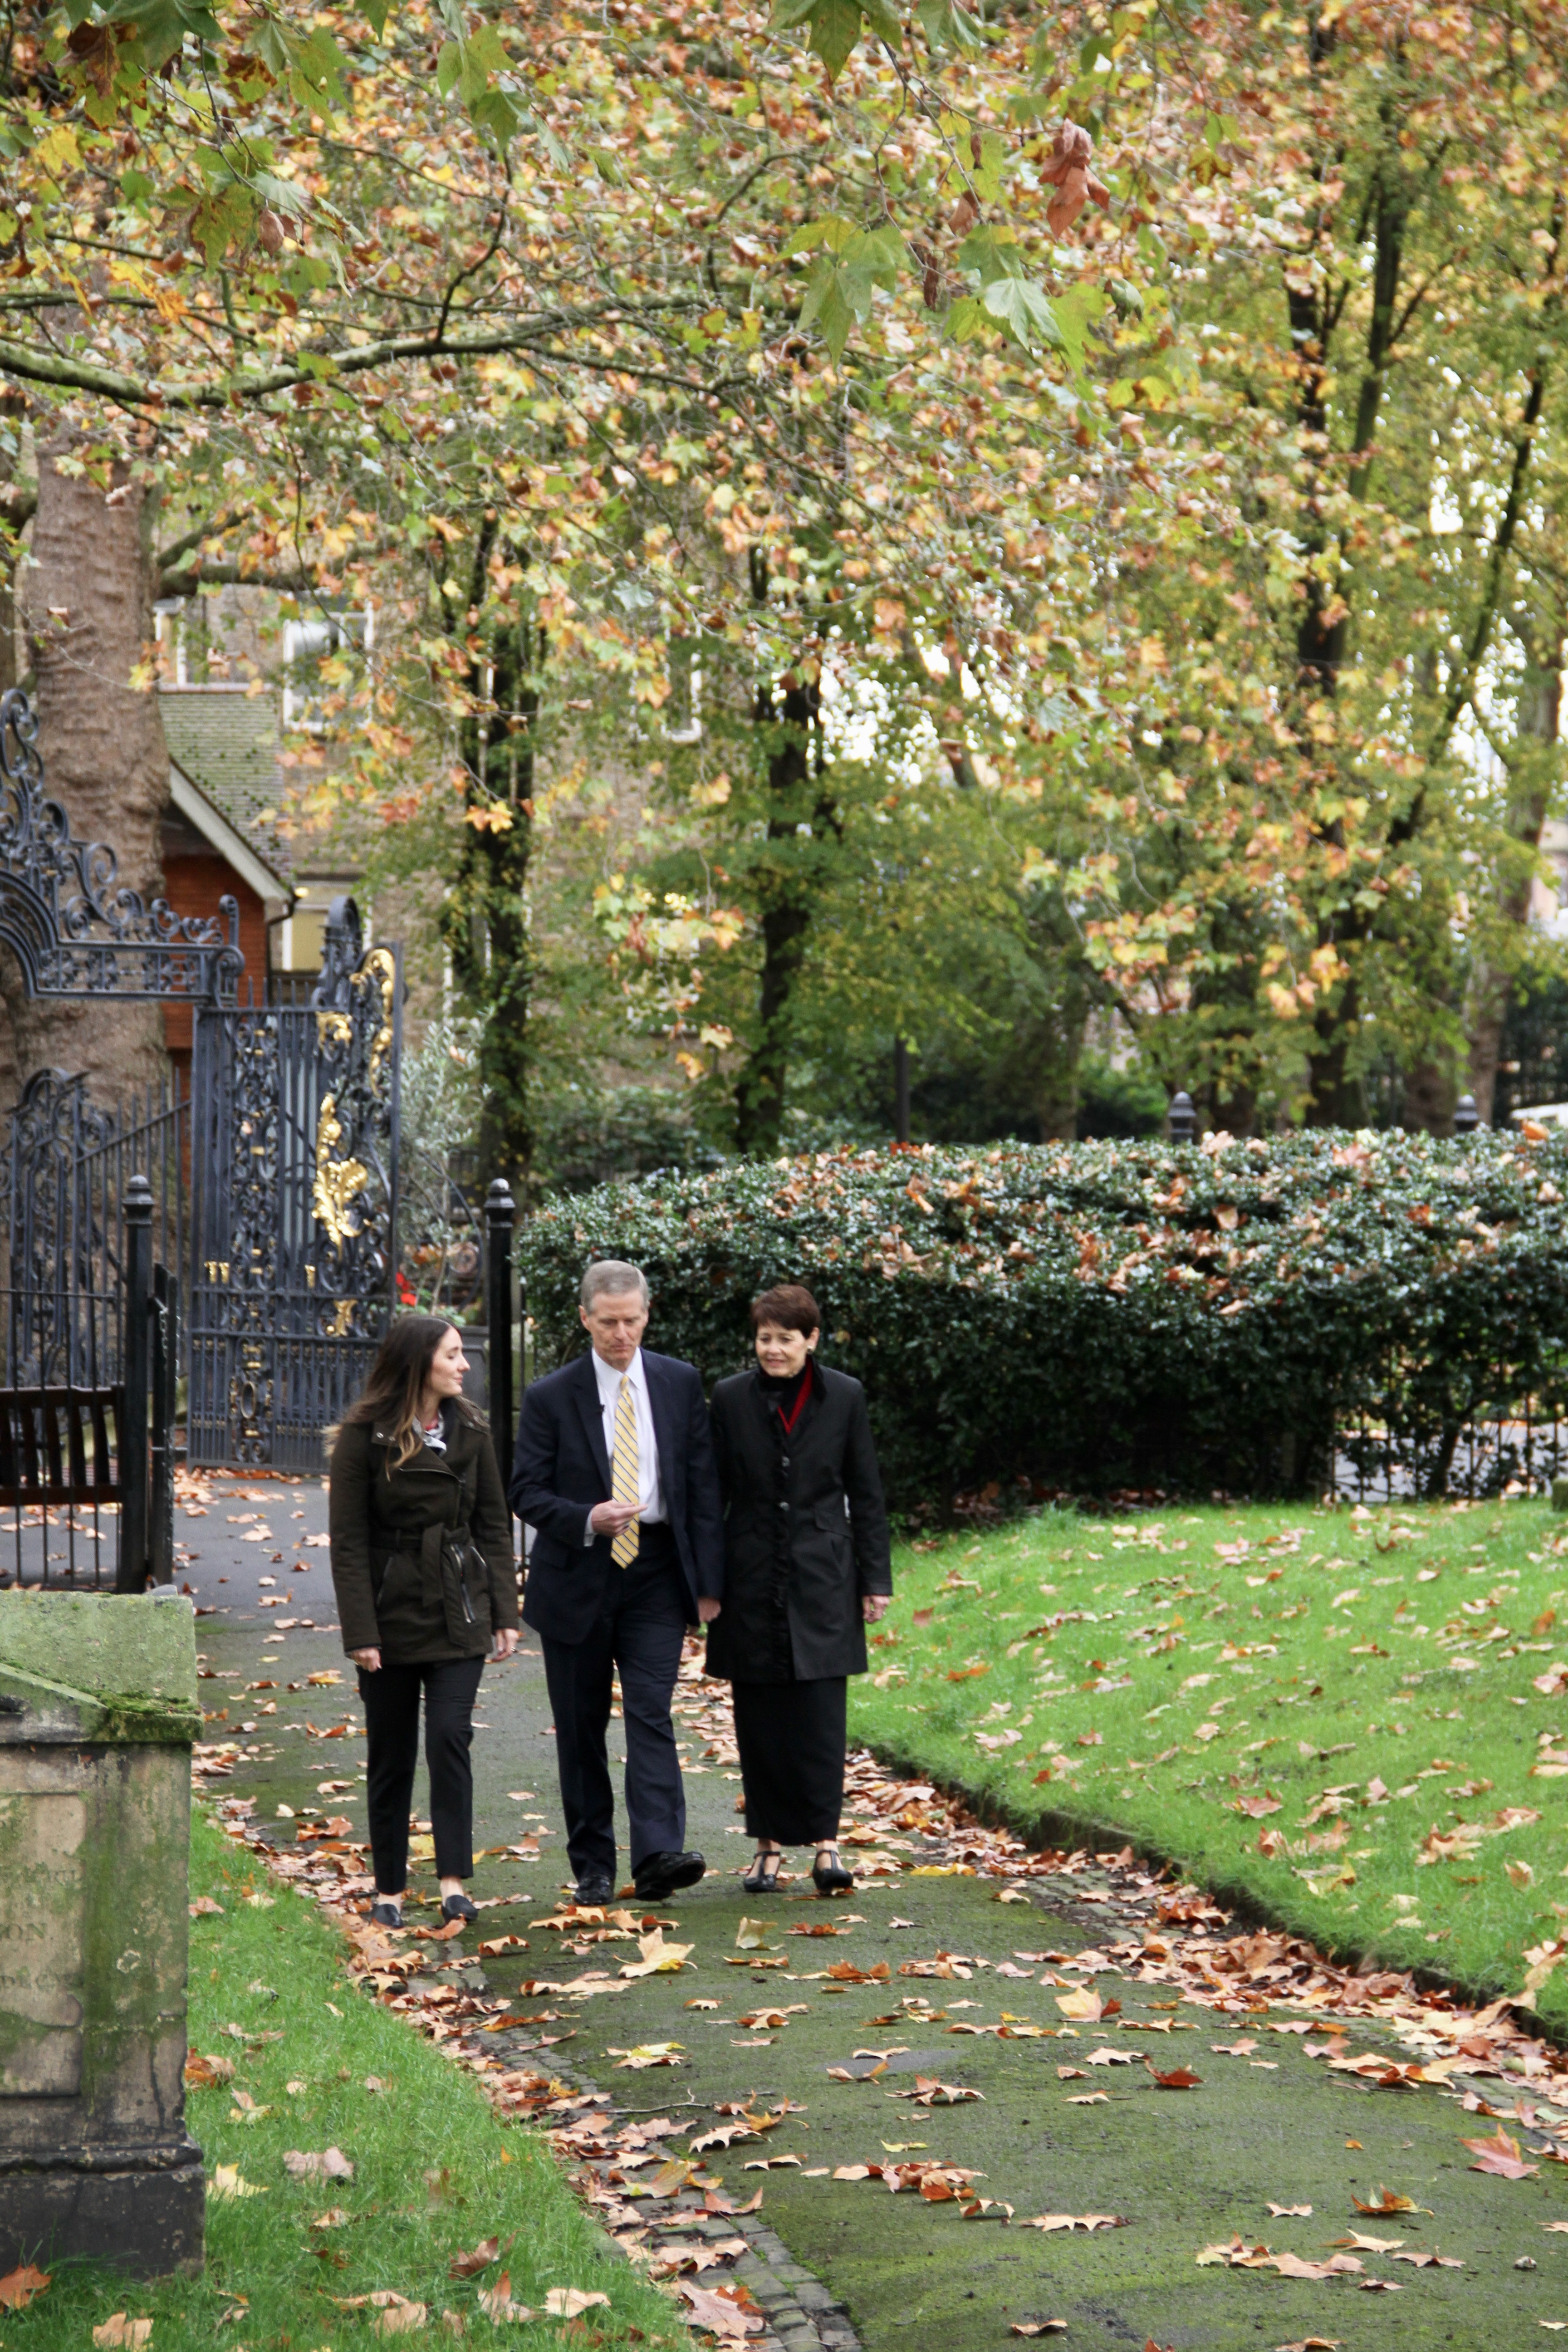 Whitney Peterson, a FamilySearch content strategist specializing in the British Isles, left, gives historical background about the St. Pancras Old Church to Elder David A. Bednar and his wife, Sister Susan Bednar, on Oct. 25, 2019, in London.